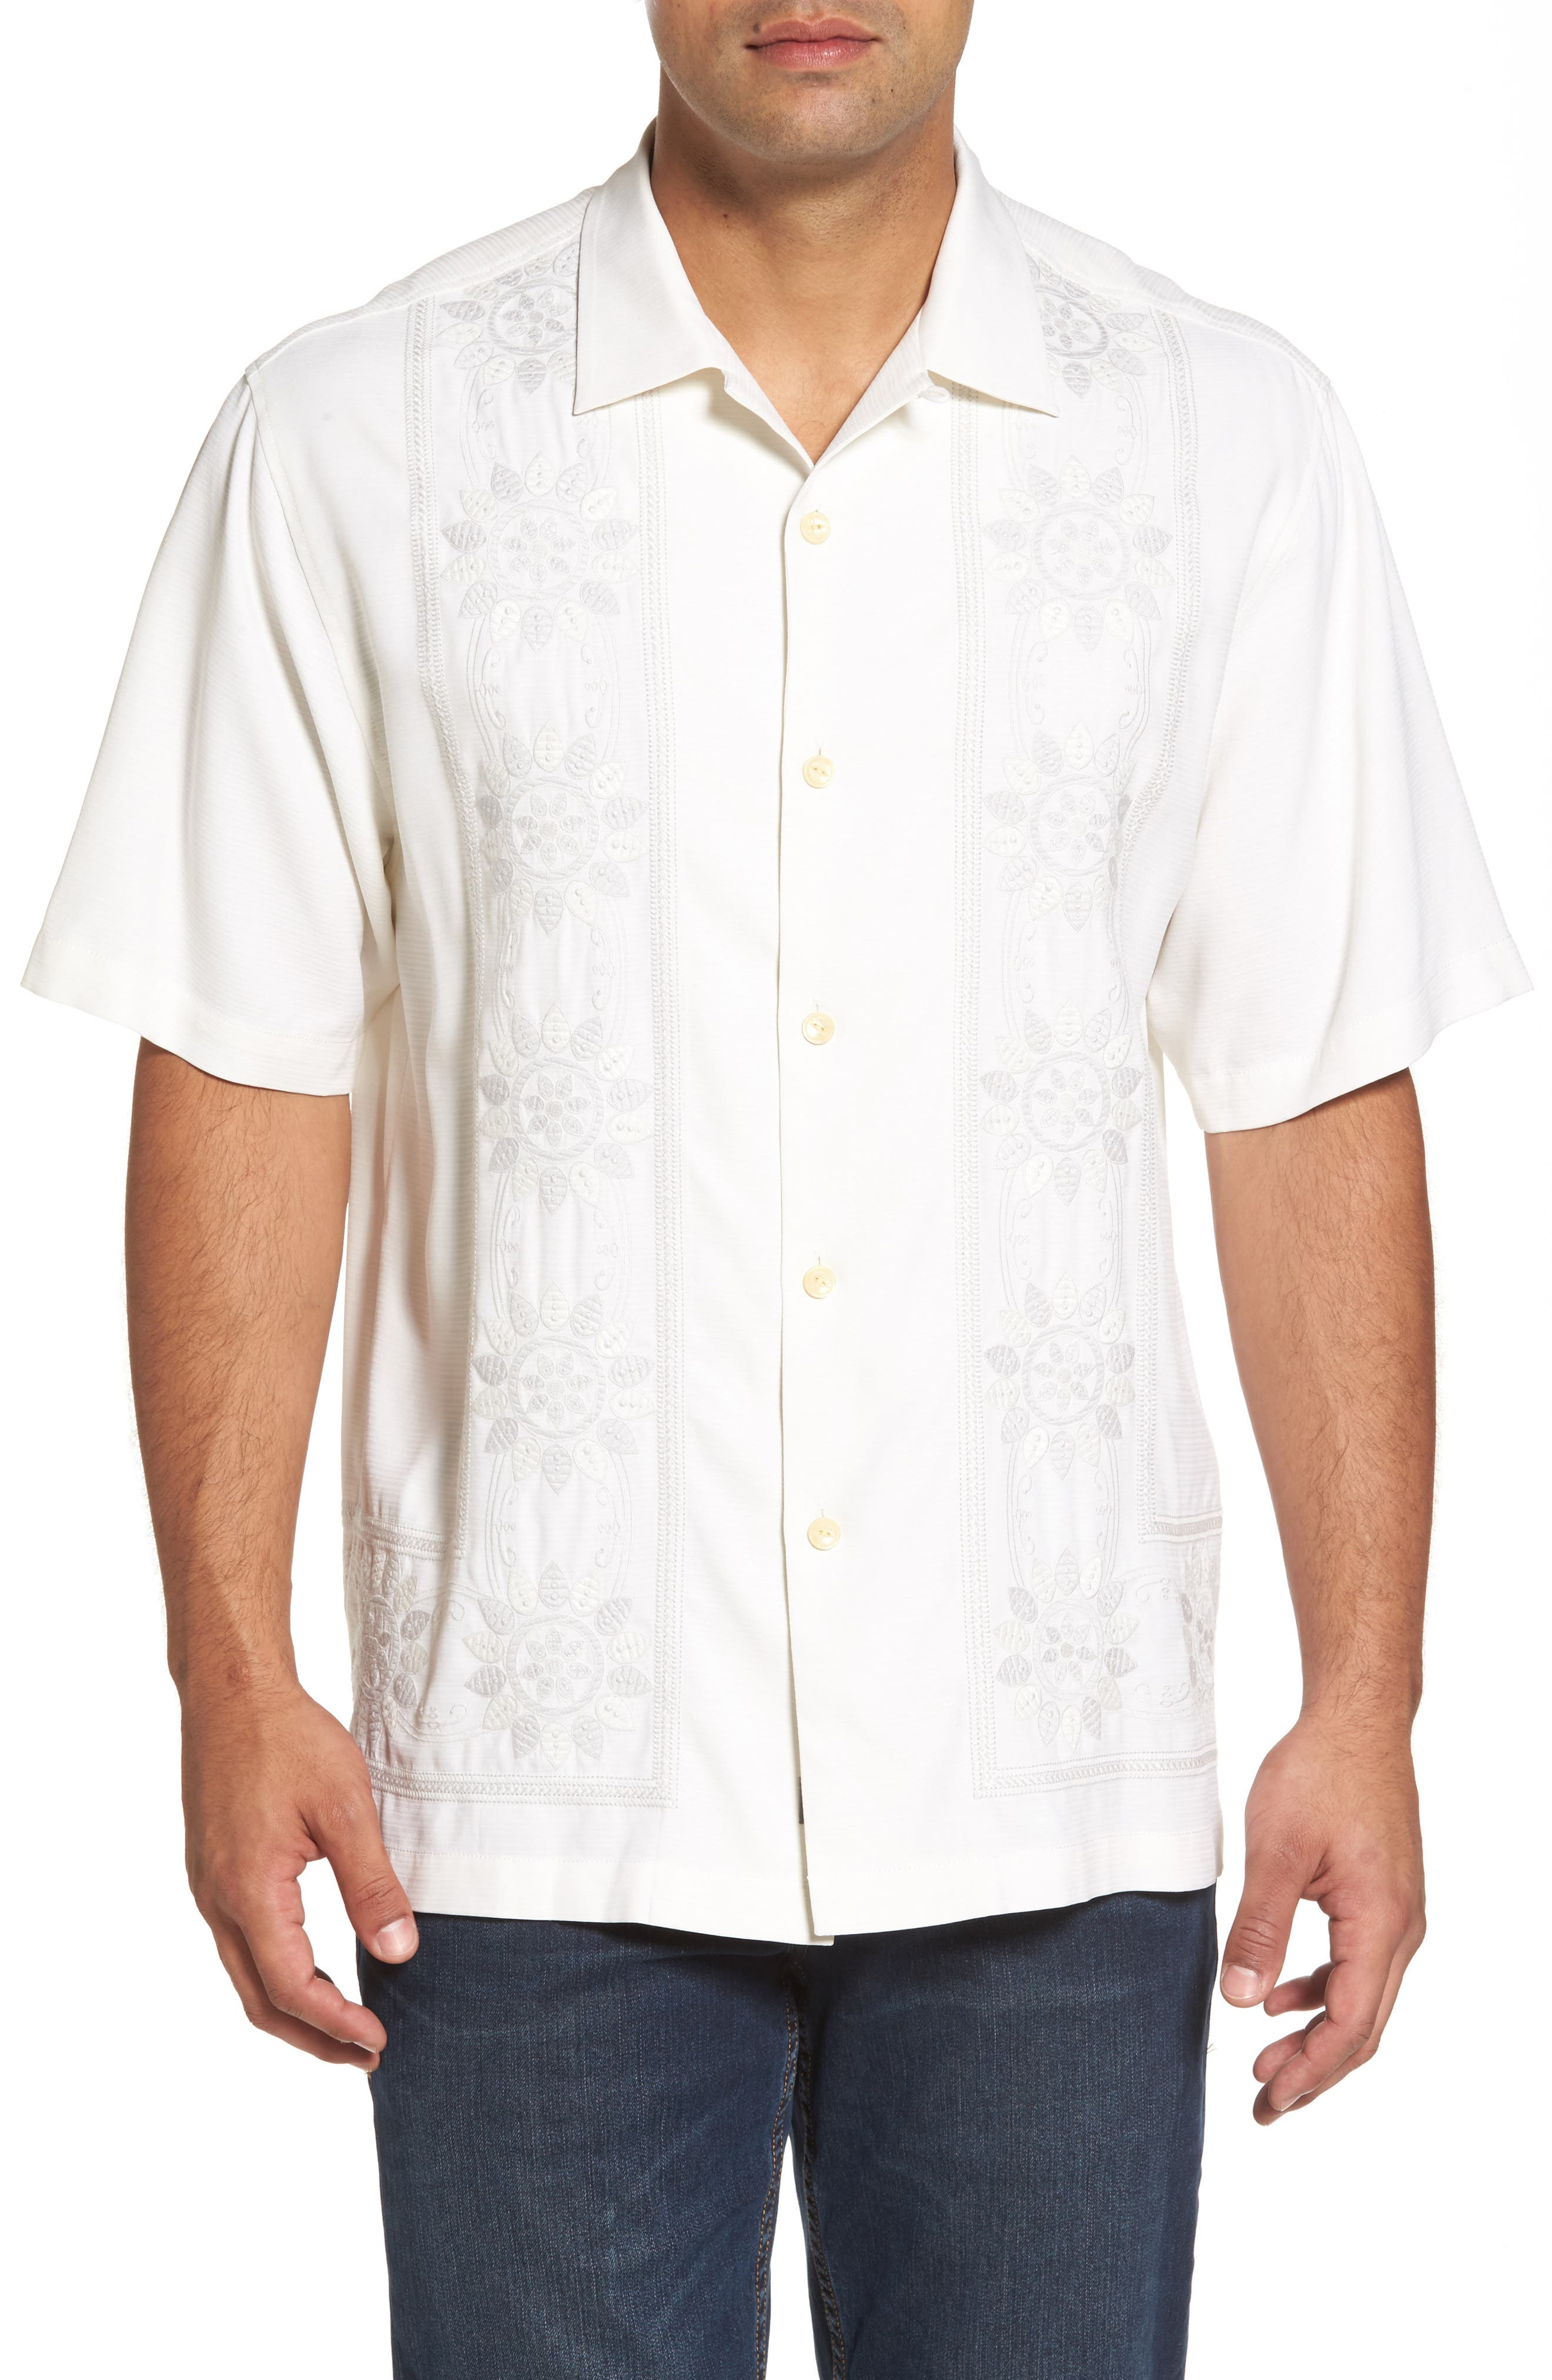 Tangier Tiles Embroidered Silk Woven Shirt,                         Main,                         color,